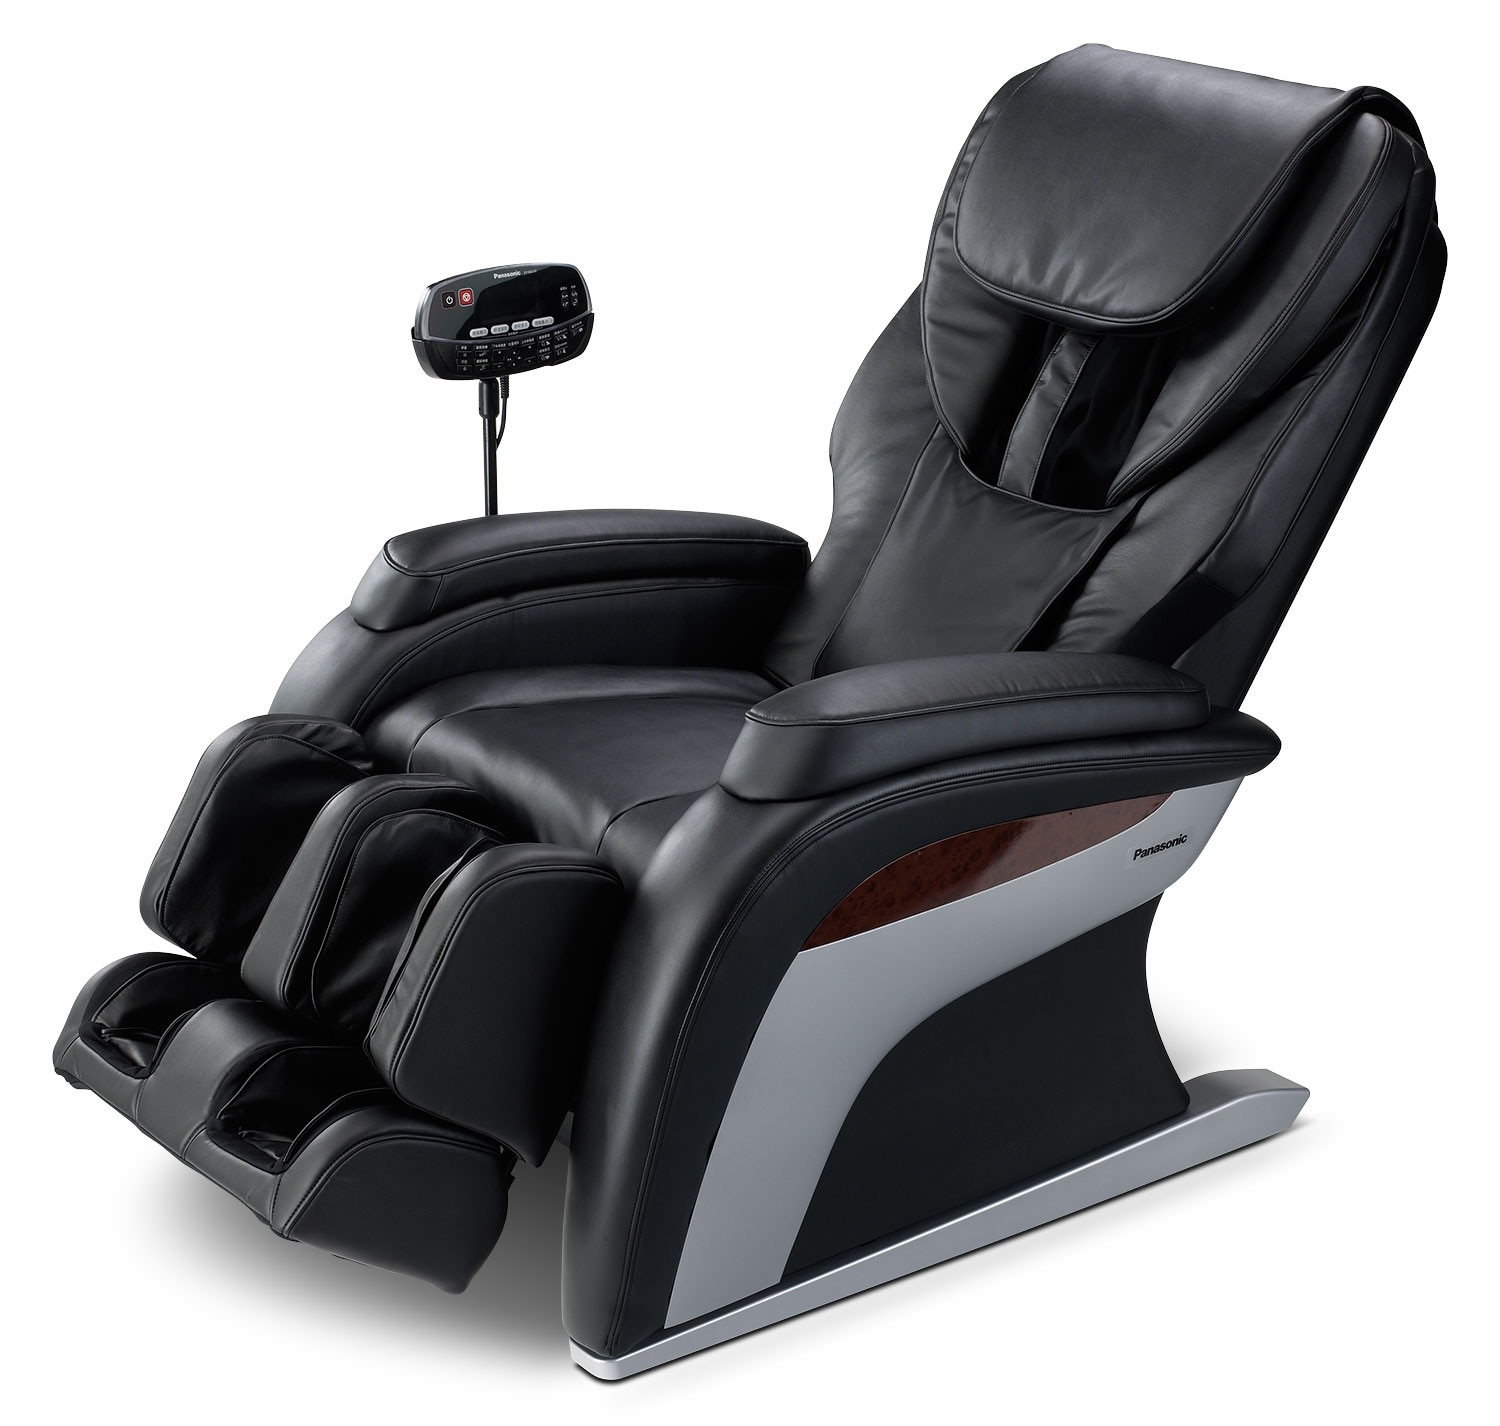 massage chair prices tufted leather office canada panasonic urban collection reclining black